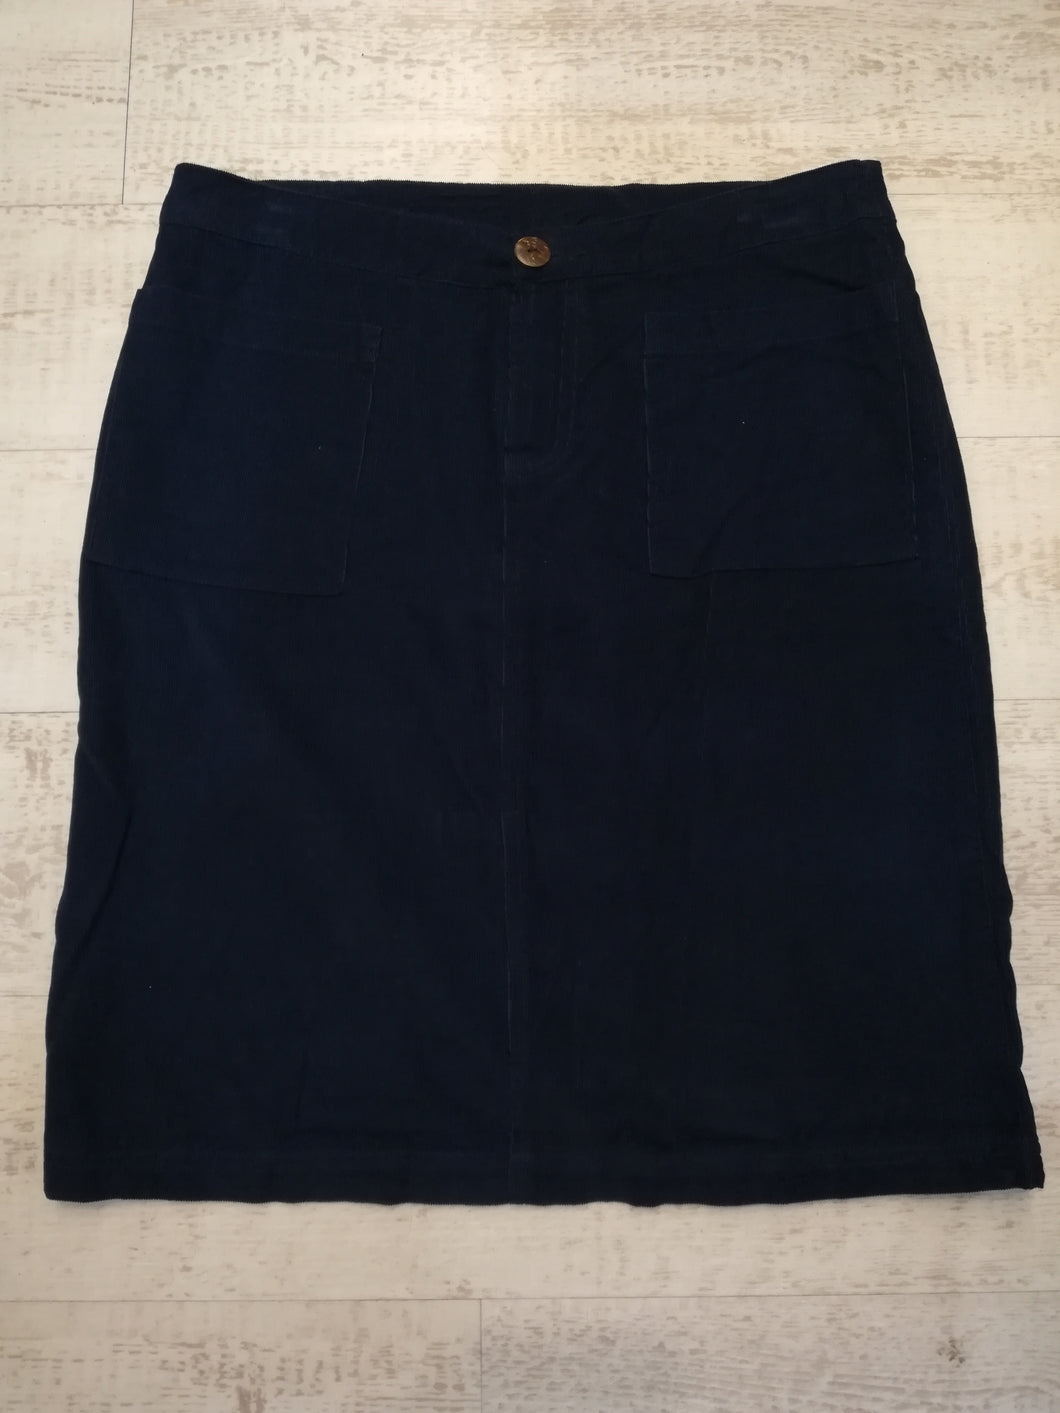 Lily & Me Navy cord skirt size 12 NO RETURN